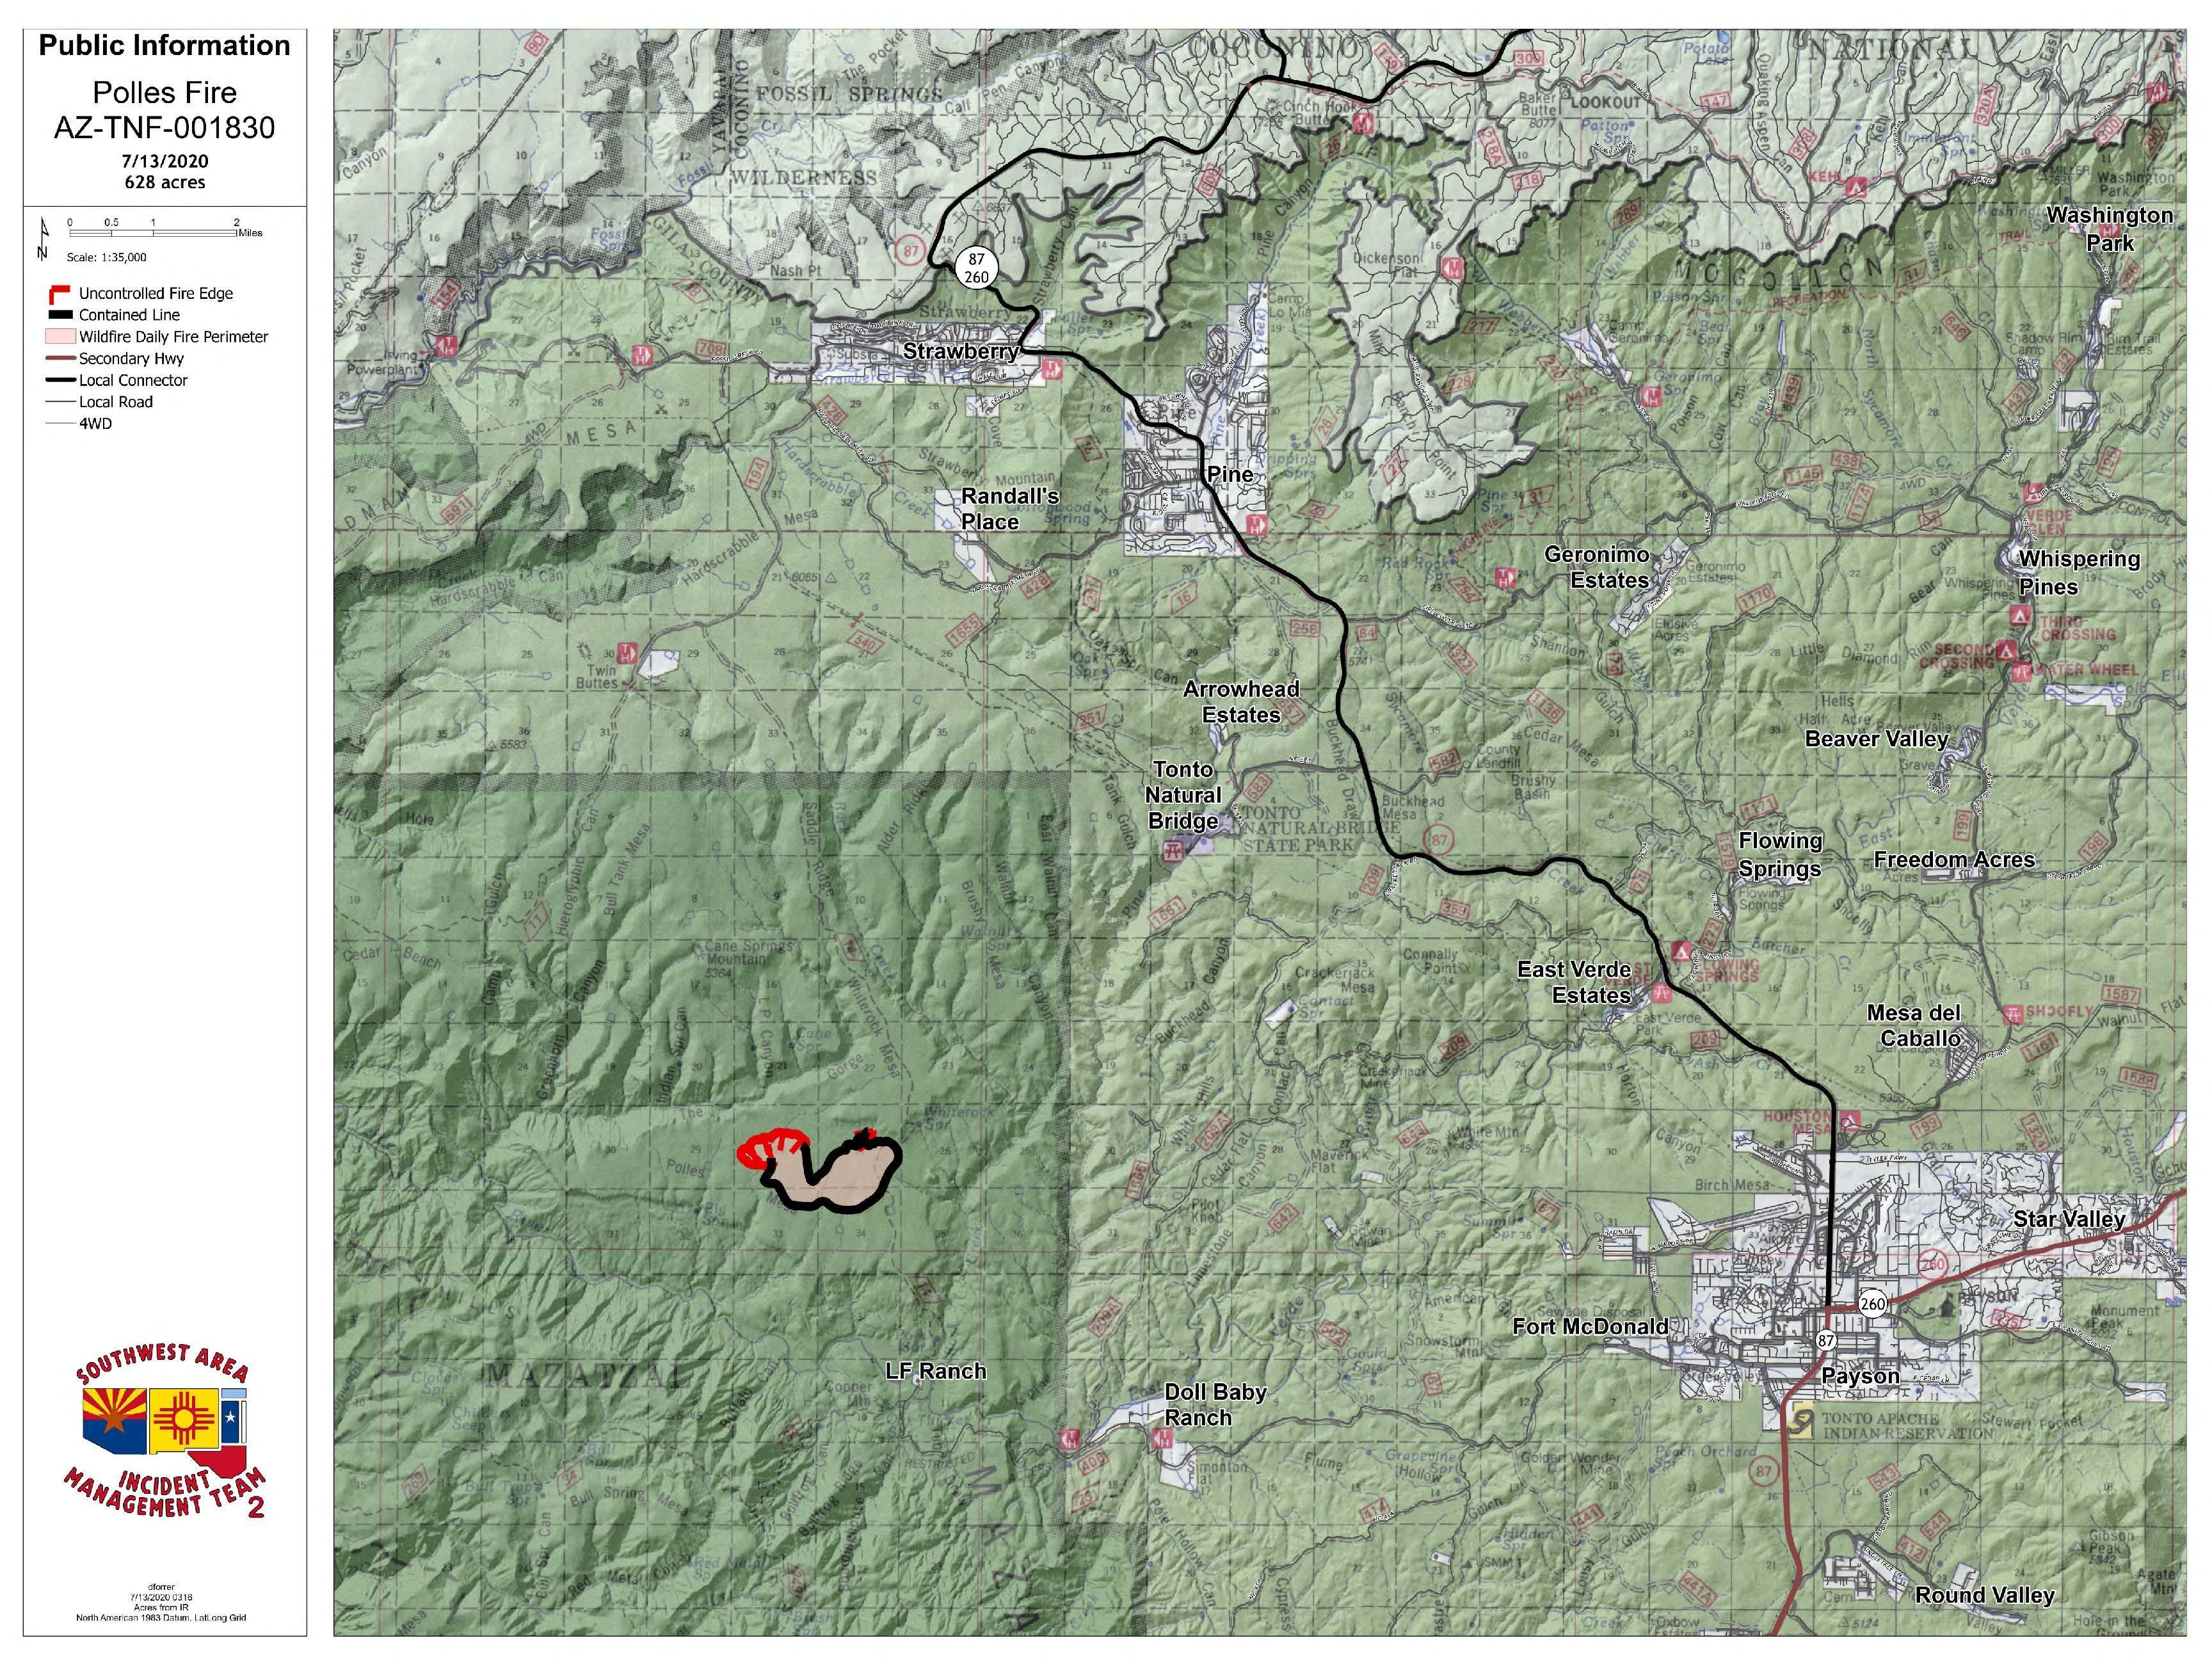 Photo of a map that shows an outlined location on a wildfire